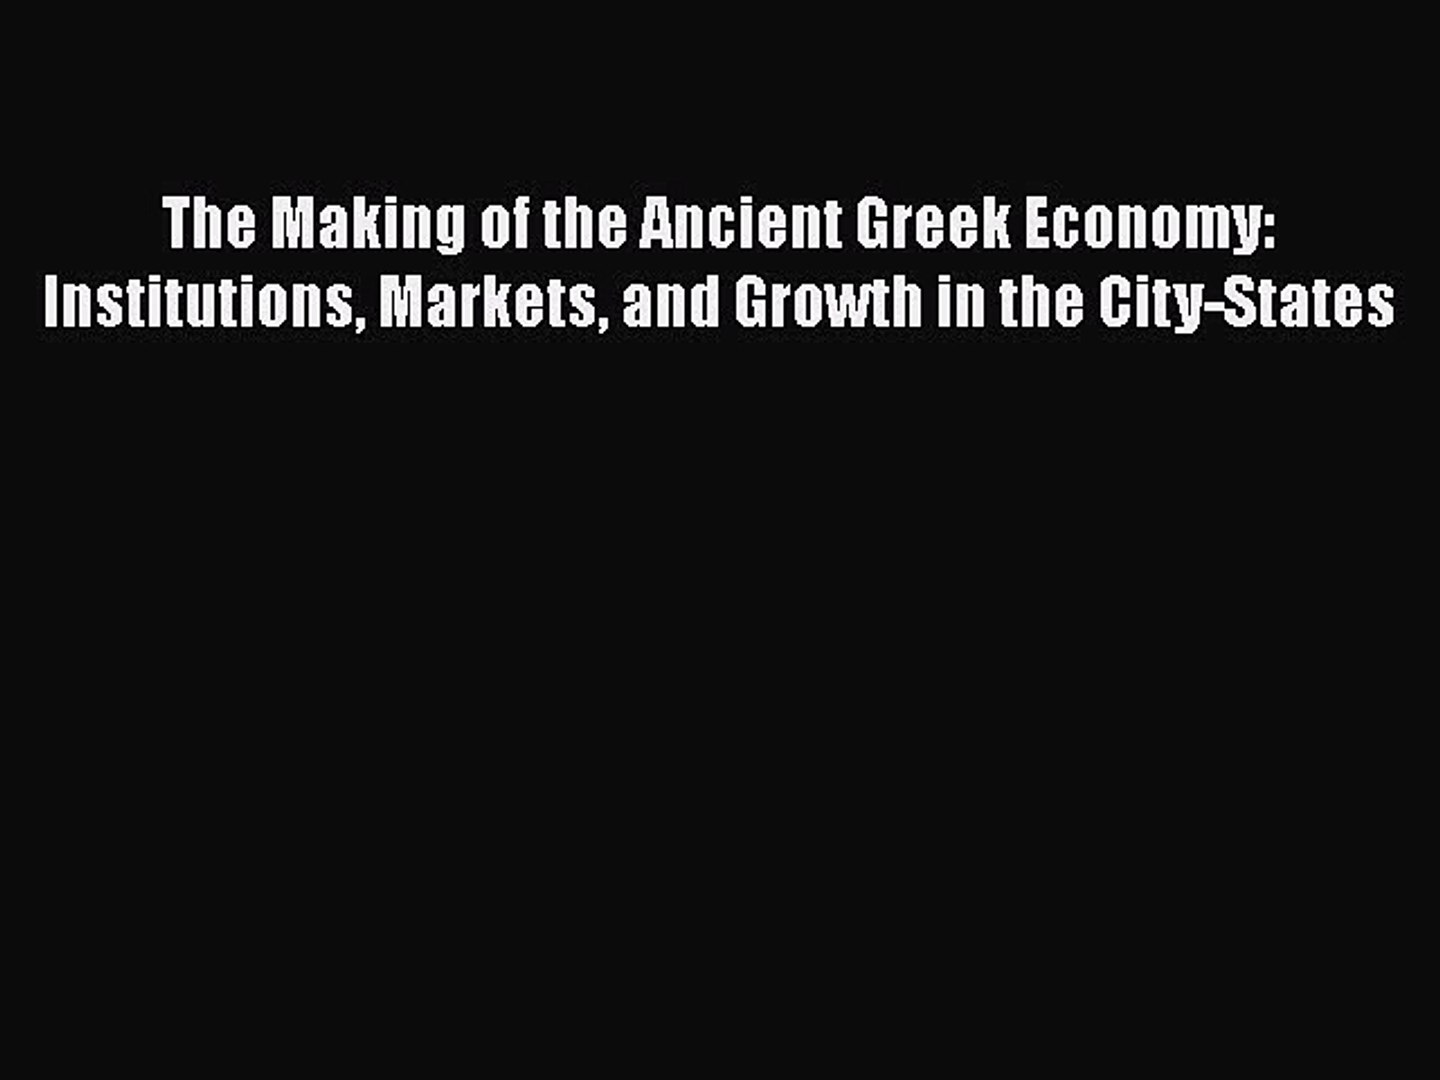 PDF The Making of the Ancient Greek Economy: Institutions Markets and Growth in the City-States